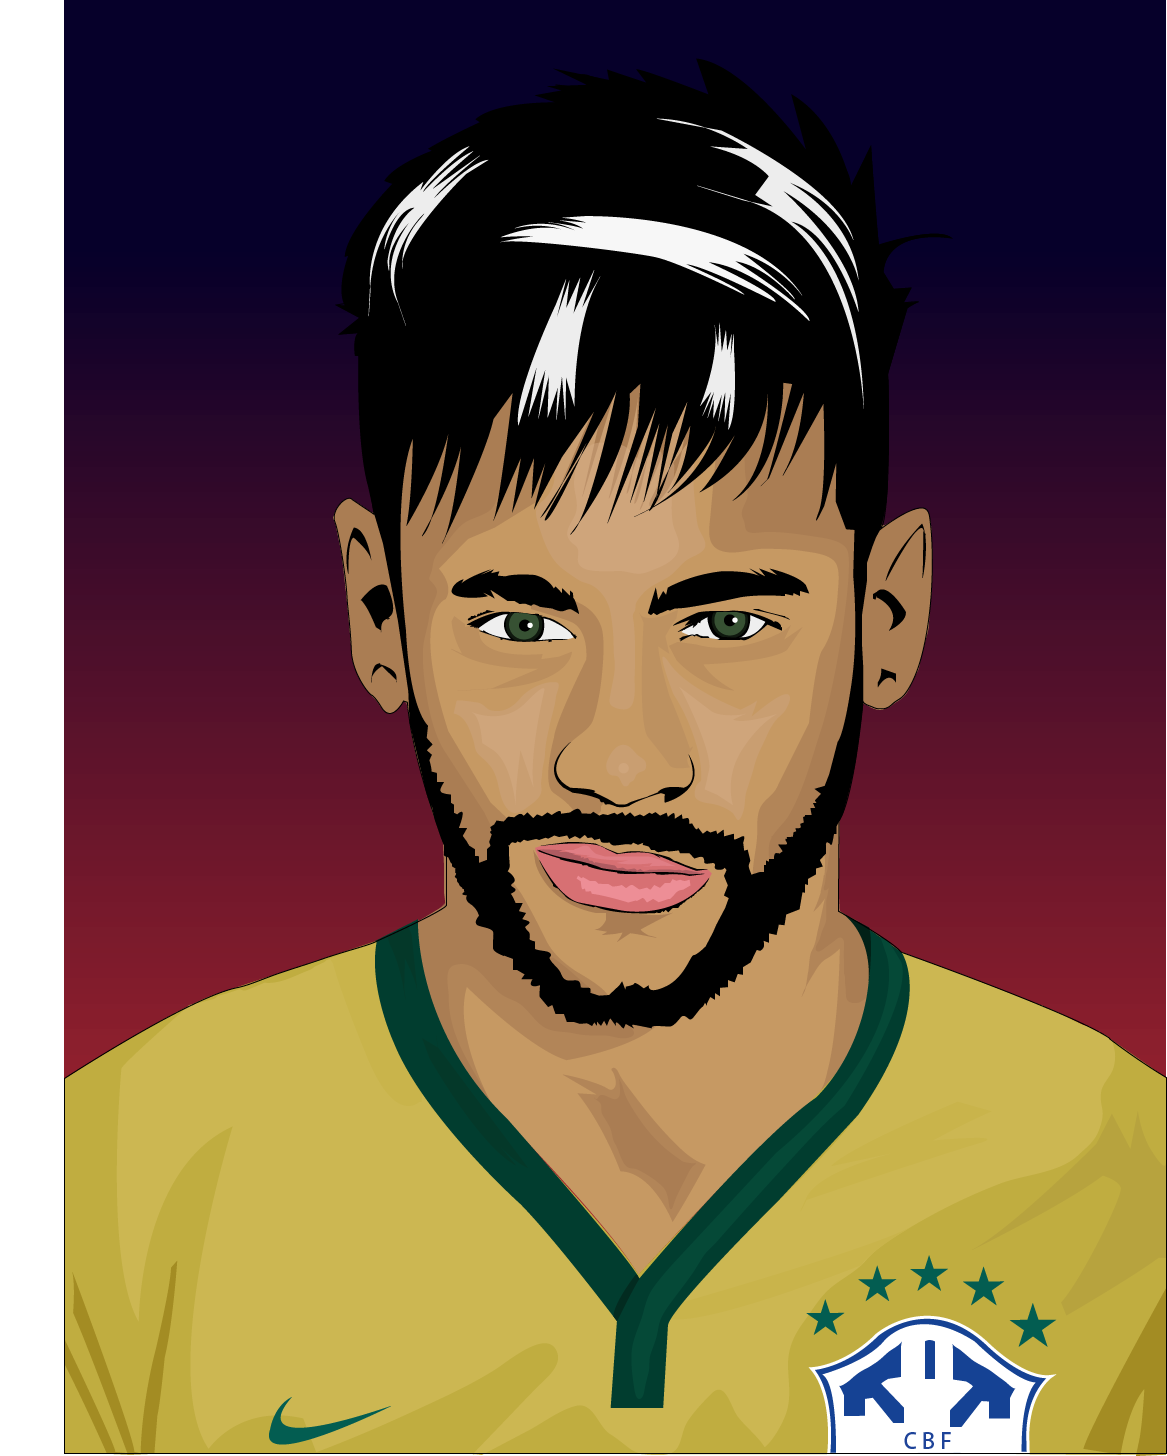 Drawing messi neymar jr. Drawn in cartoon style